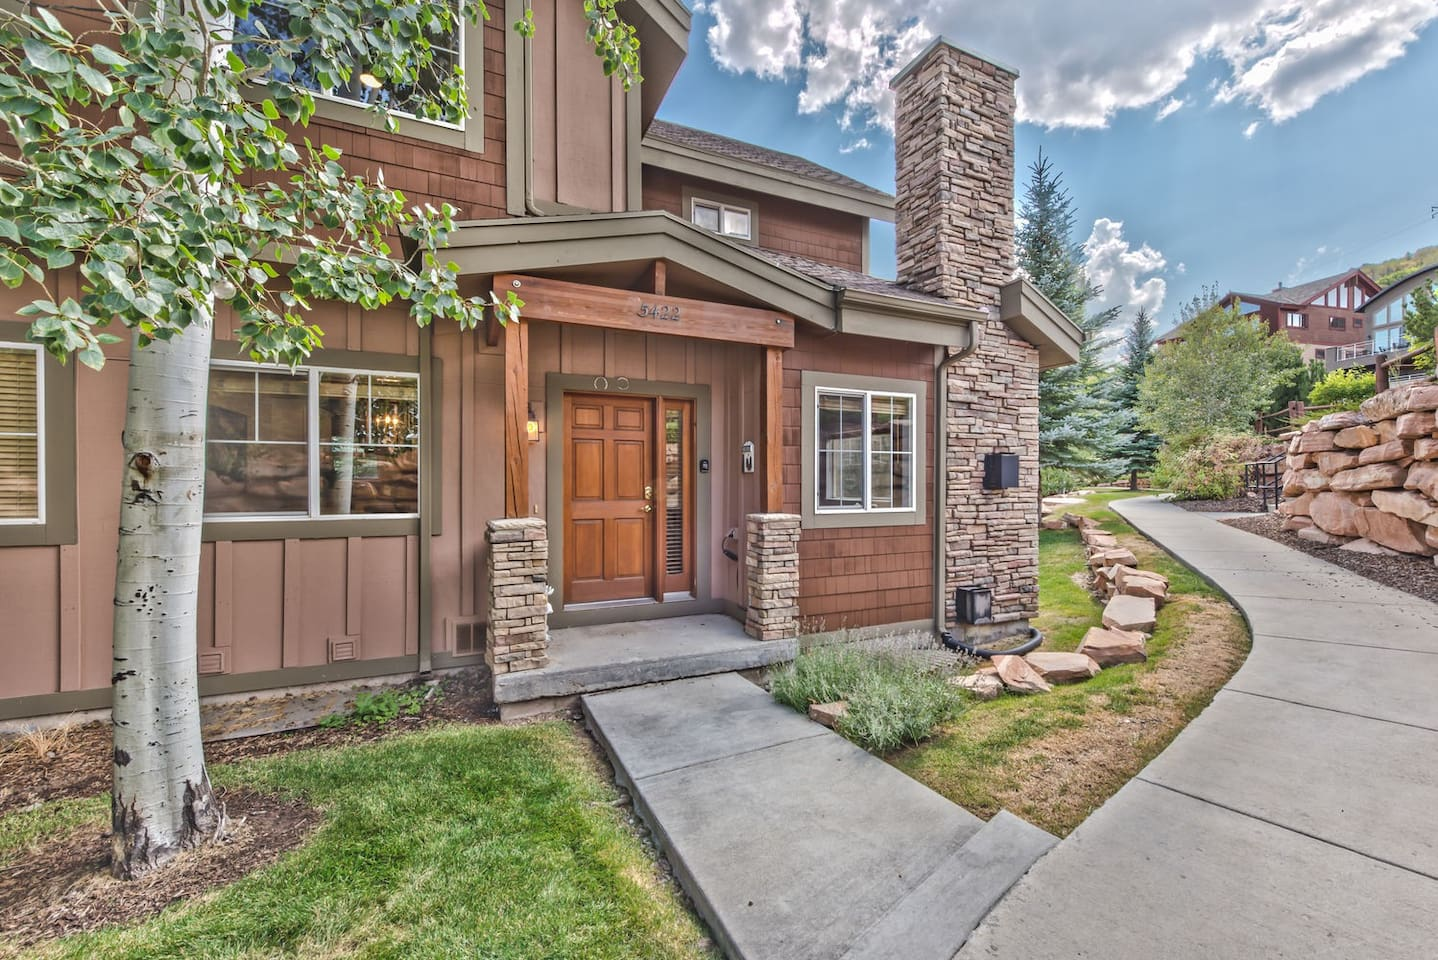 The All New, Completely Remodeled Park City Bear Hollow Getaway!